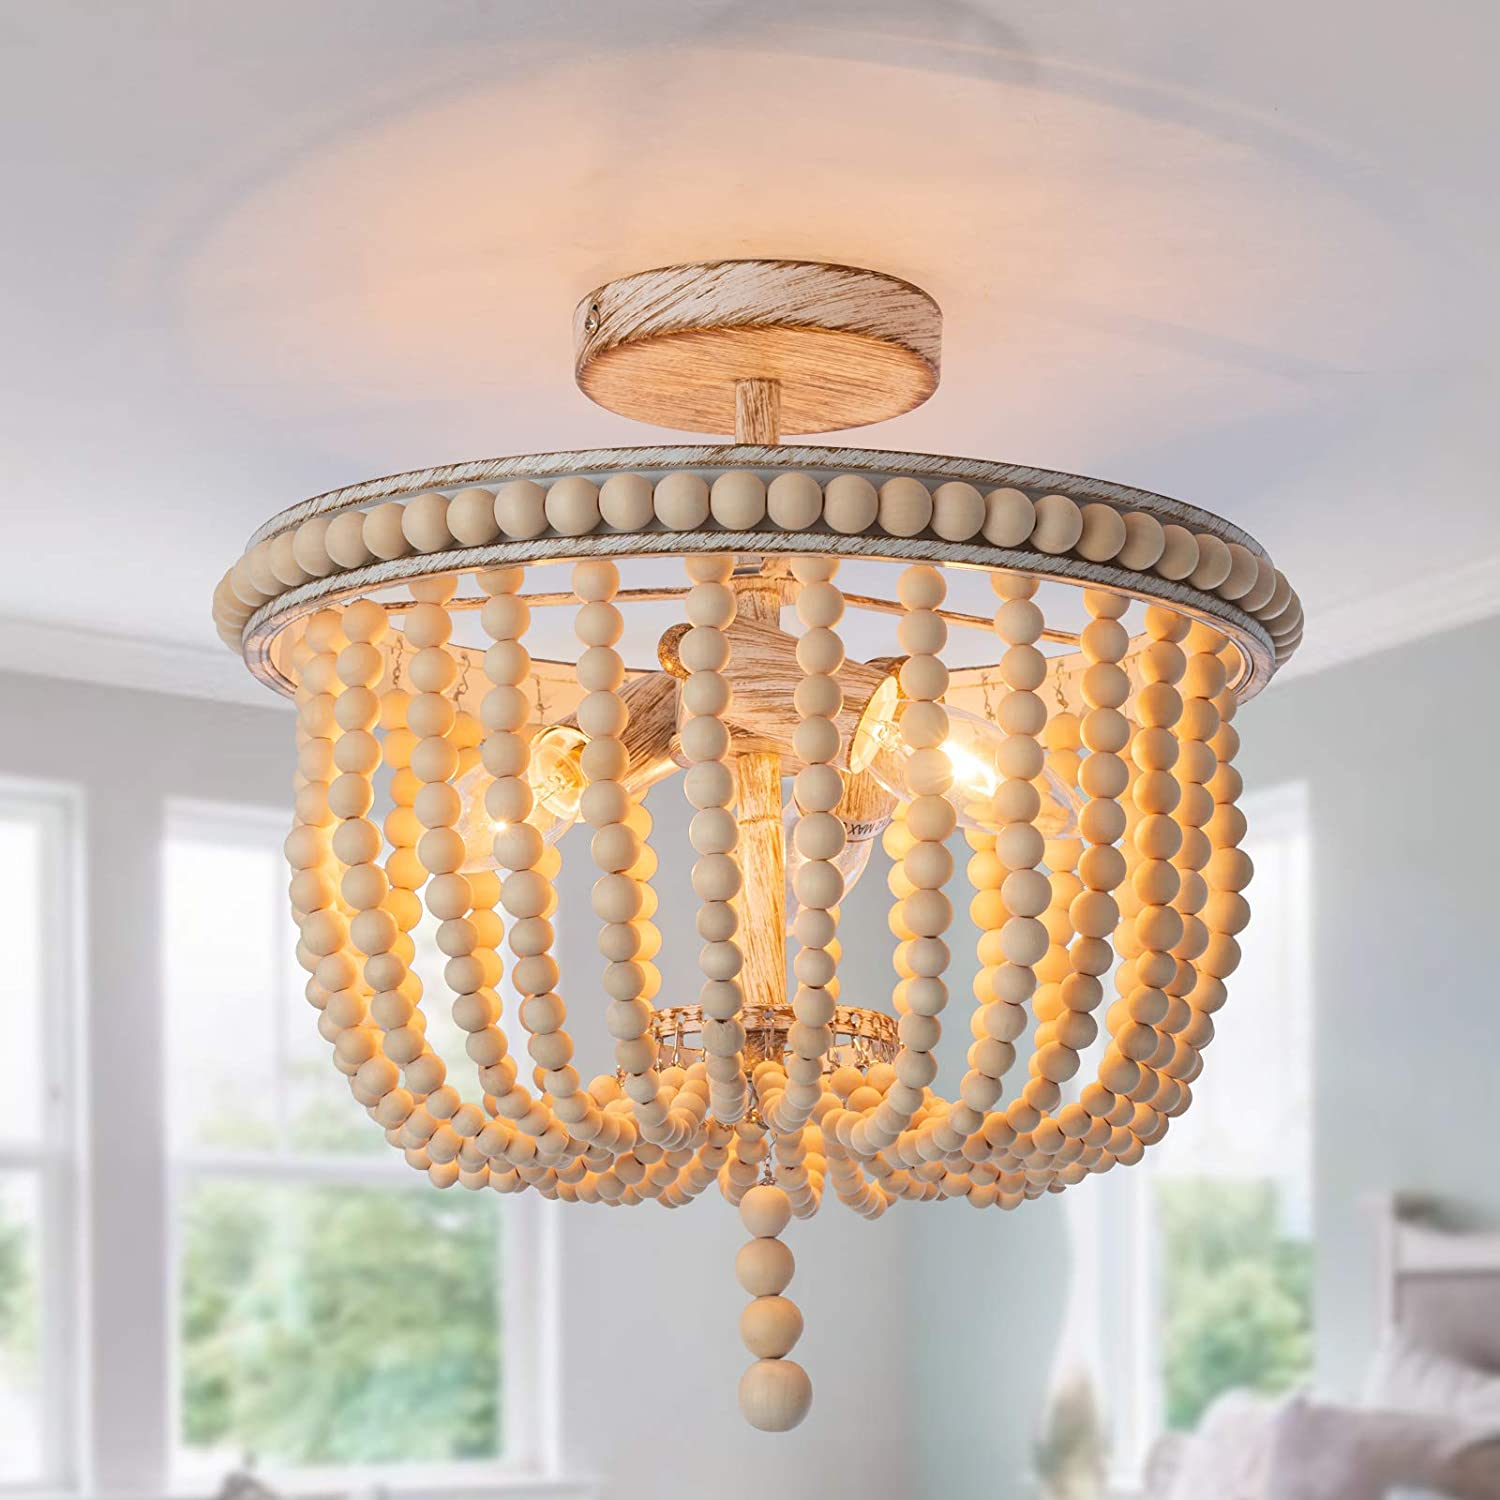 Wood Beaded Flush Mount Ceiling Light,3-Lights Antique Rustic Beaded Chandelier, Farmhouse Lighting Fixtures for Bedroom Living Room Kitchen Entryway Hallway and Stairway, Hand Painted Oak Wood Finish